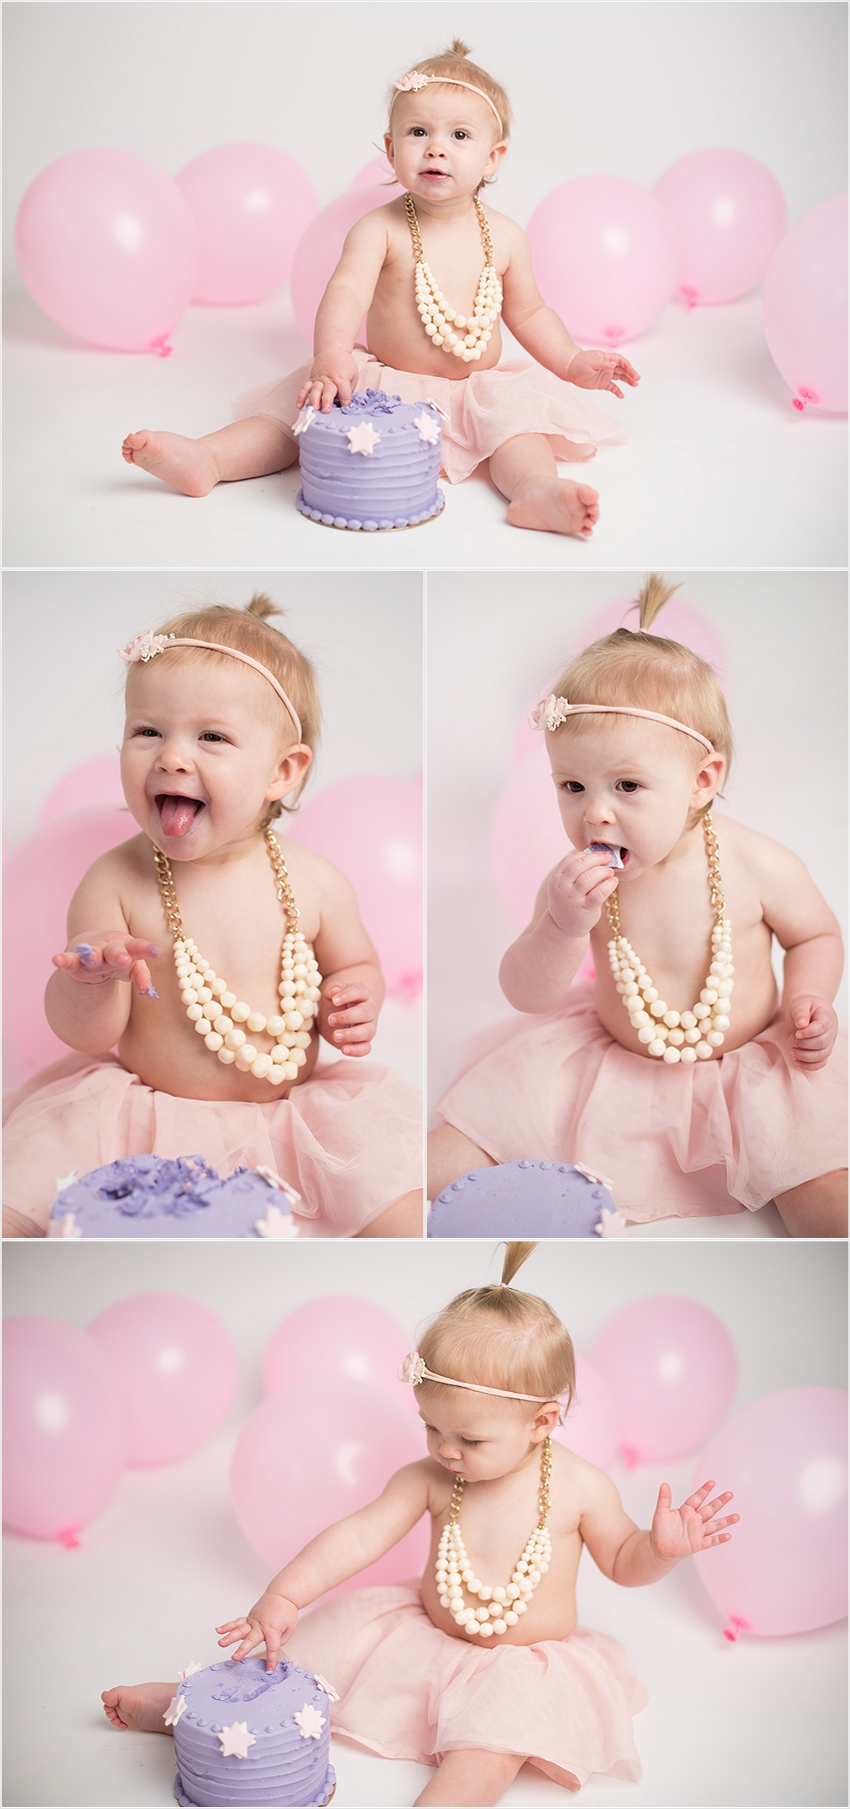 One year old birthday Abbotsford photographer Maggie 007 (Side 7)